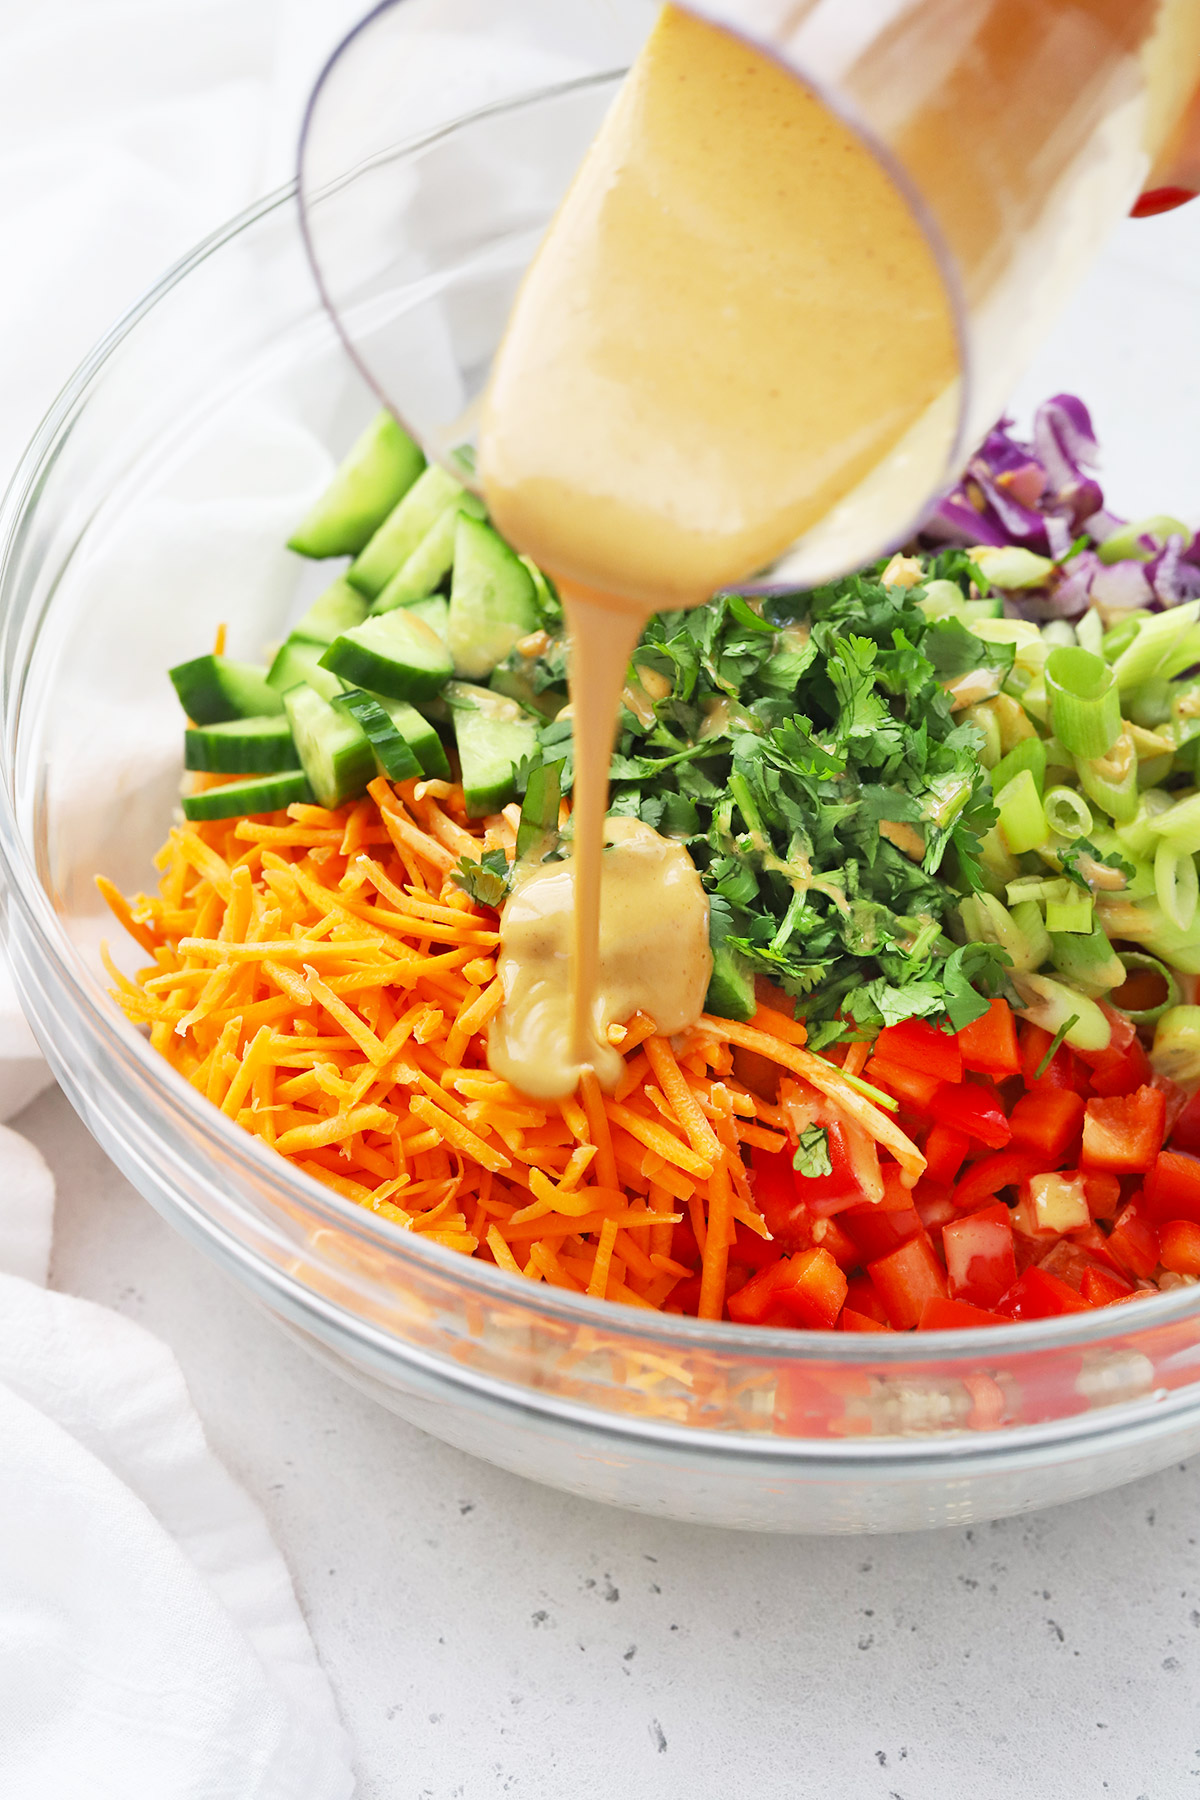 Pouring Peanut Dressing on Thai Quinoa Salad in a glass bowl